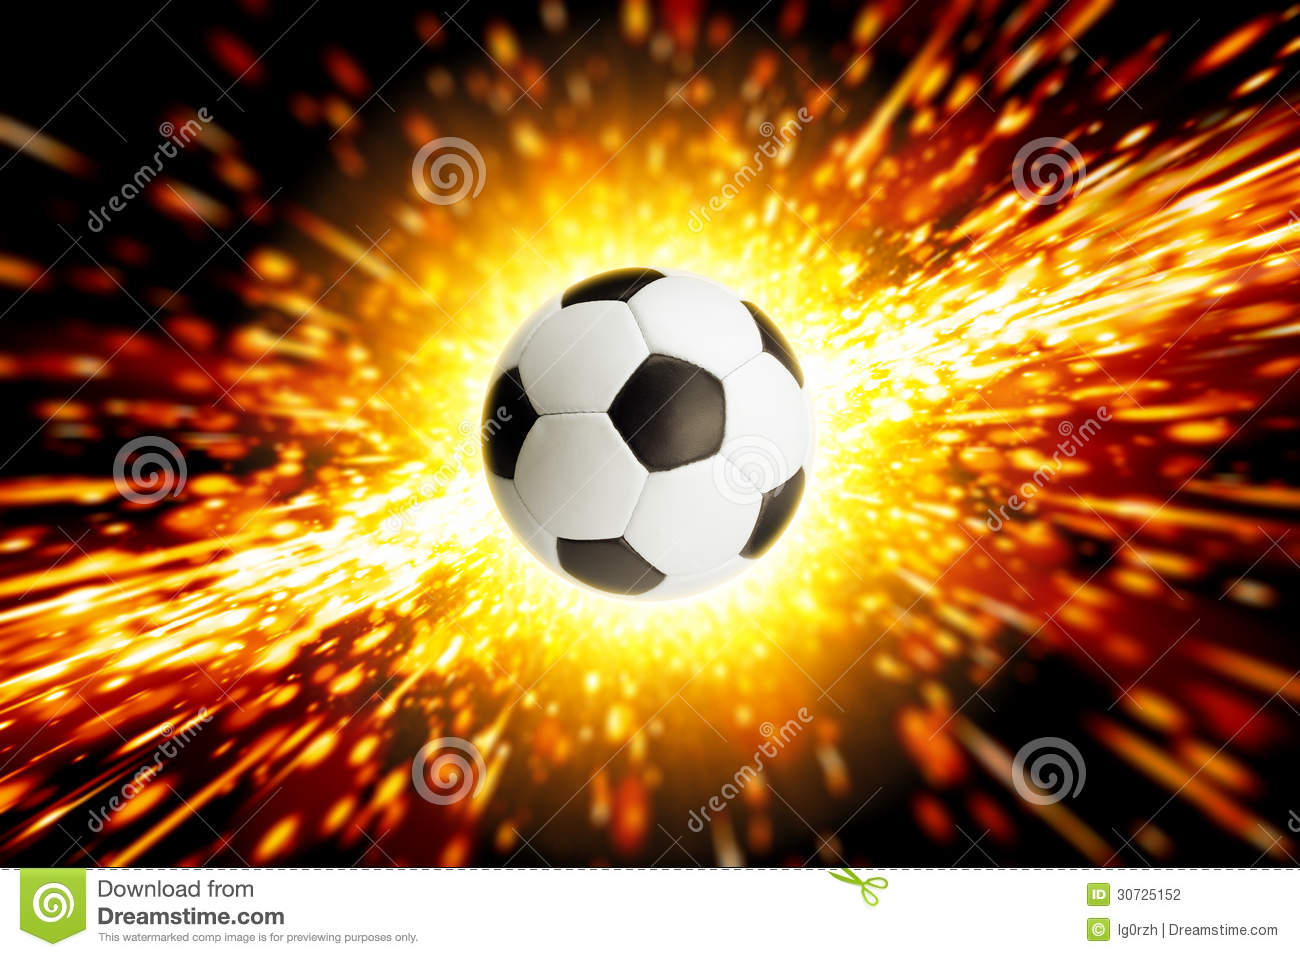 Soccer ball fire Images and Stock Photos 1546 Soccer